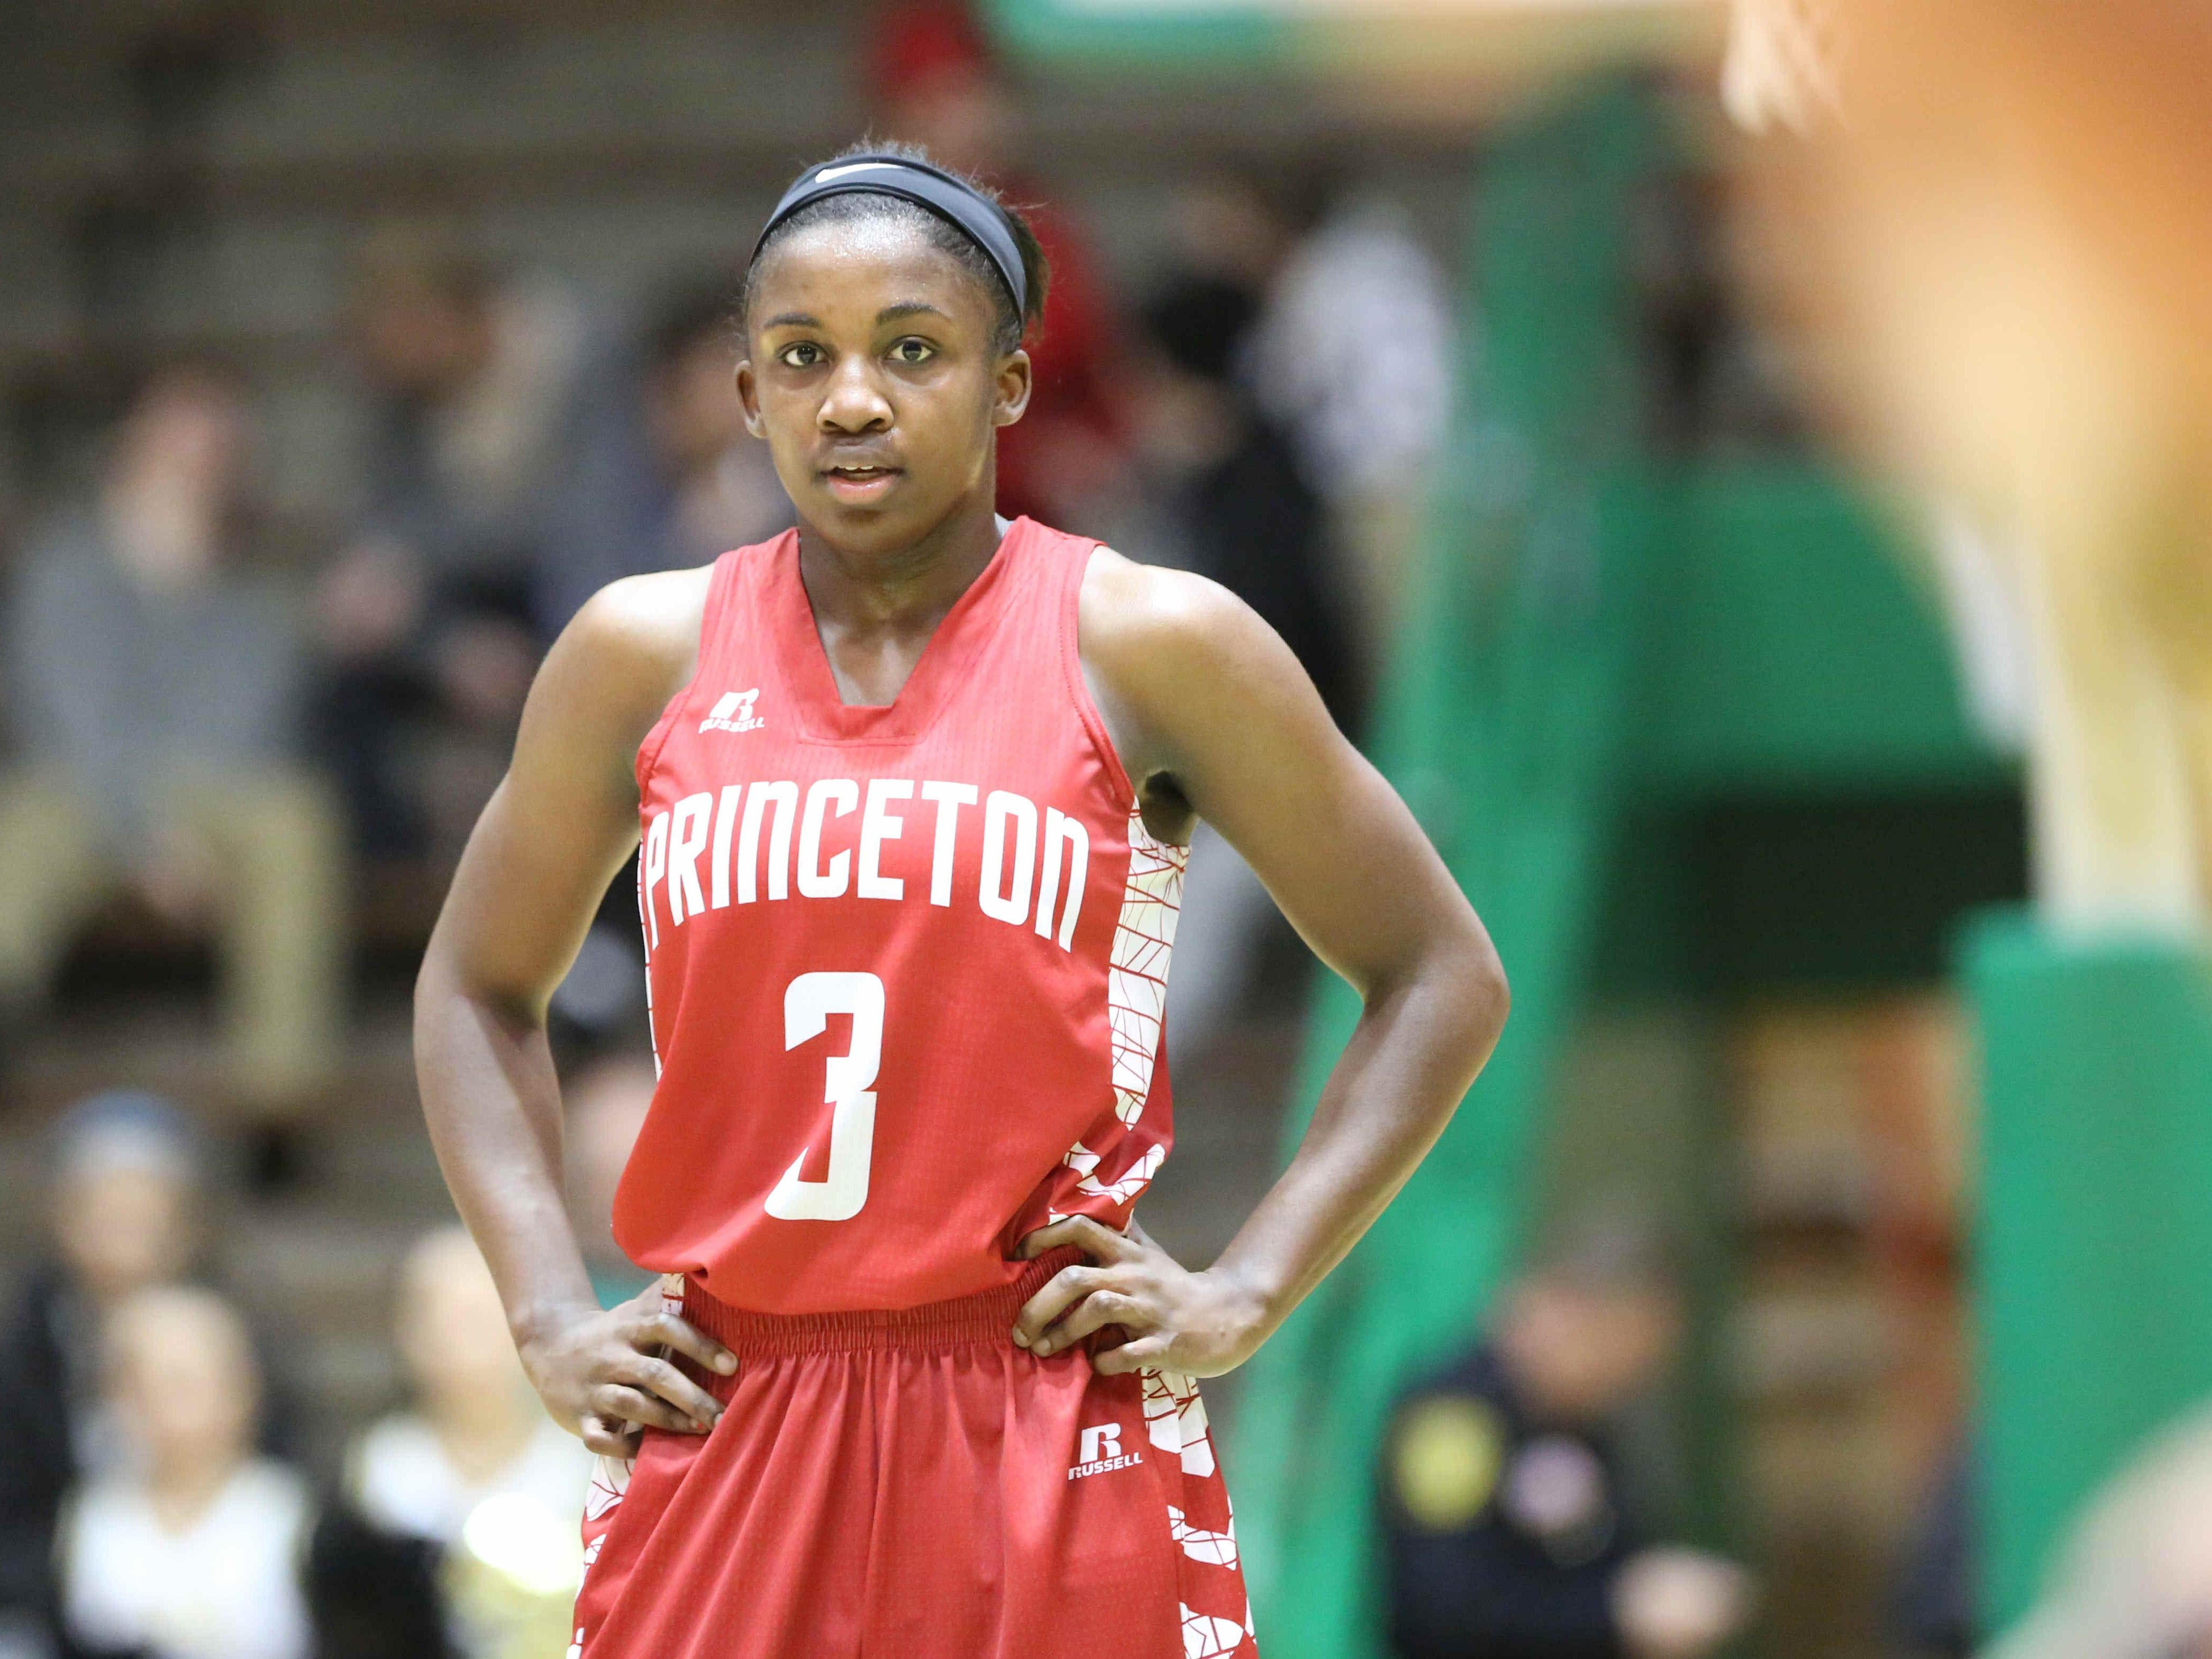 Princeton's Jackie Young scored 34 points as the Tigers beat Noblesville in the City Securities Hall of Fame Classic championship game Tuesday night in New Castle.